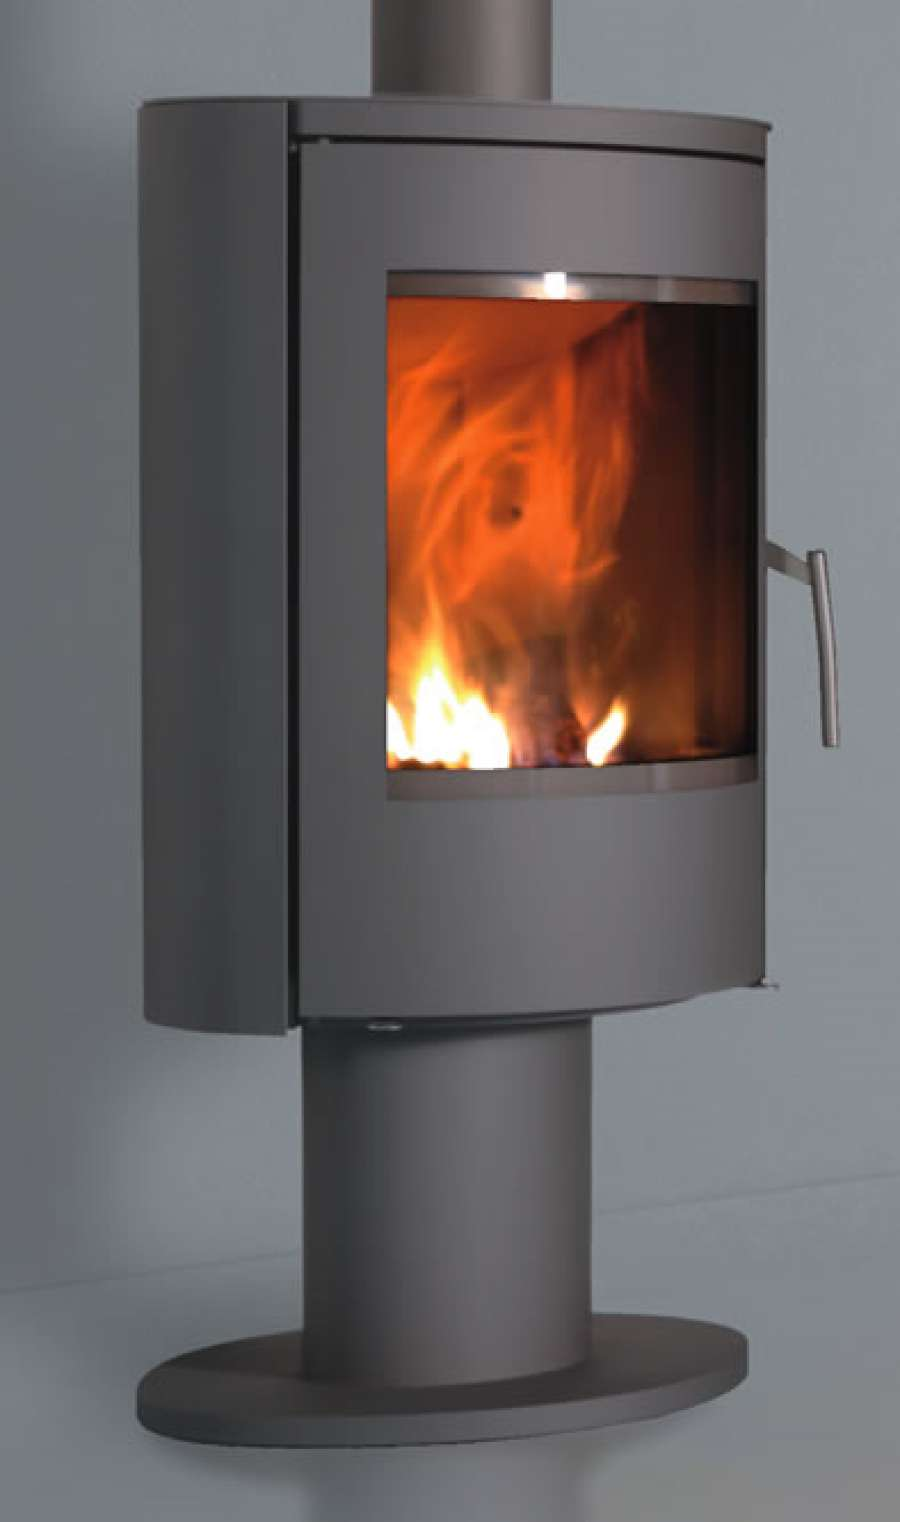 Fonte flamme nara 7 kw for Poele a bois encastrable prix